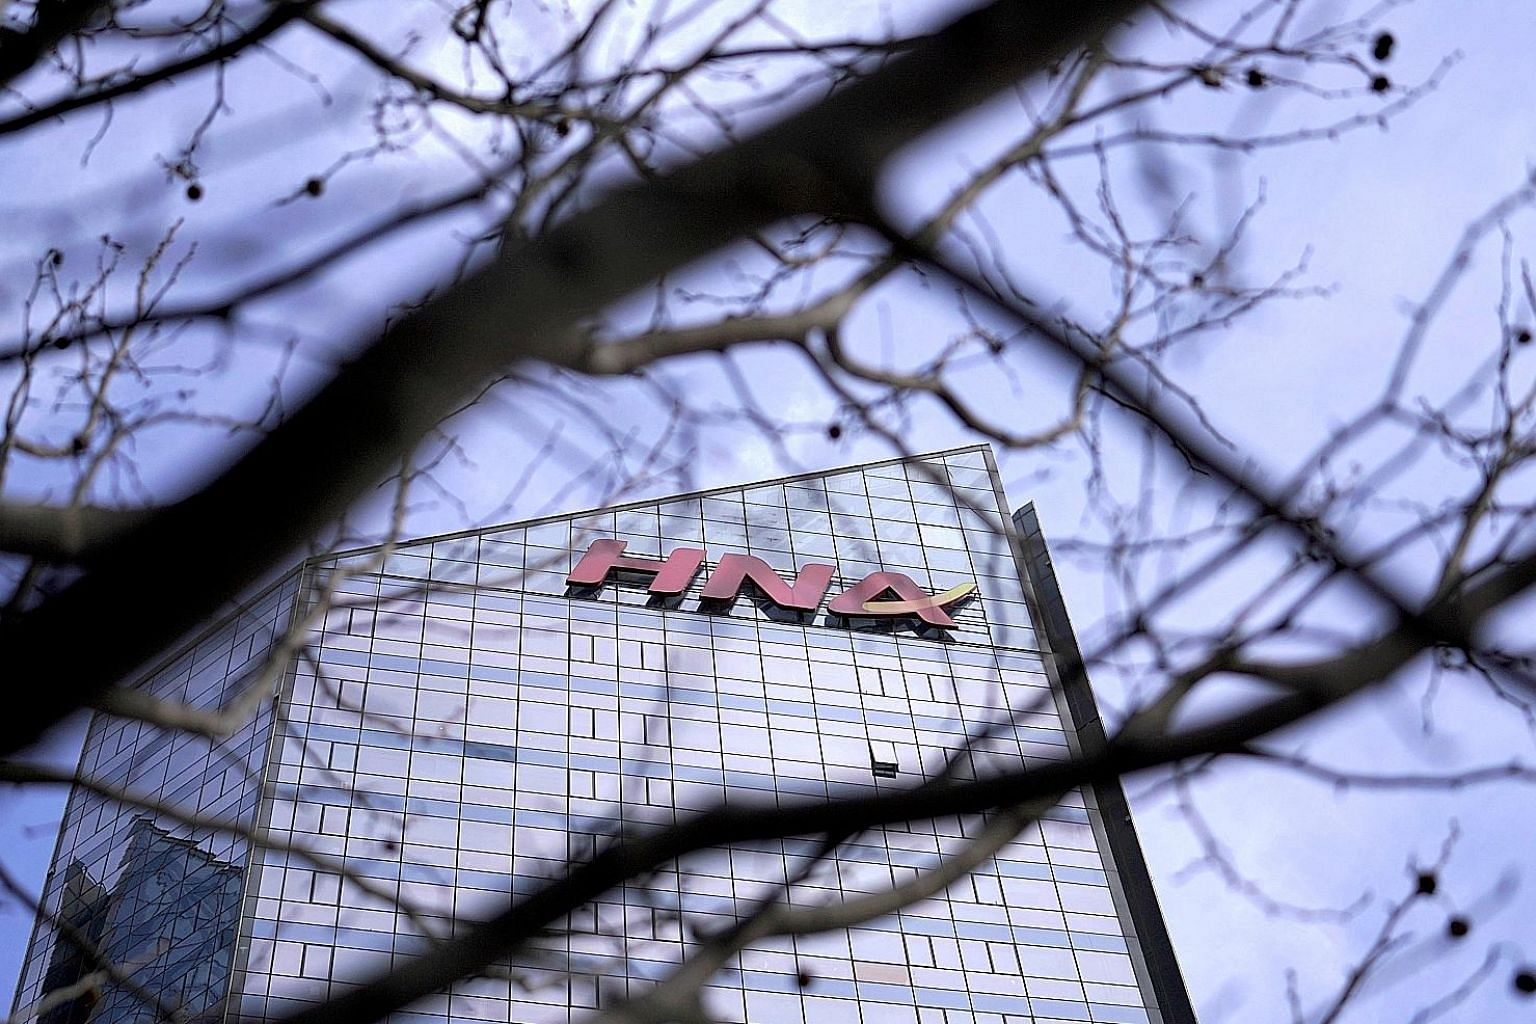 HNA Group chairman Chen Feng has promoted his son and a nephew as key lieutenants, consolidating his family's control over the embattled Chinese conglomerate.